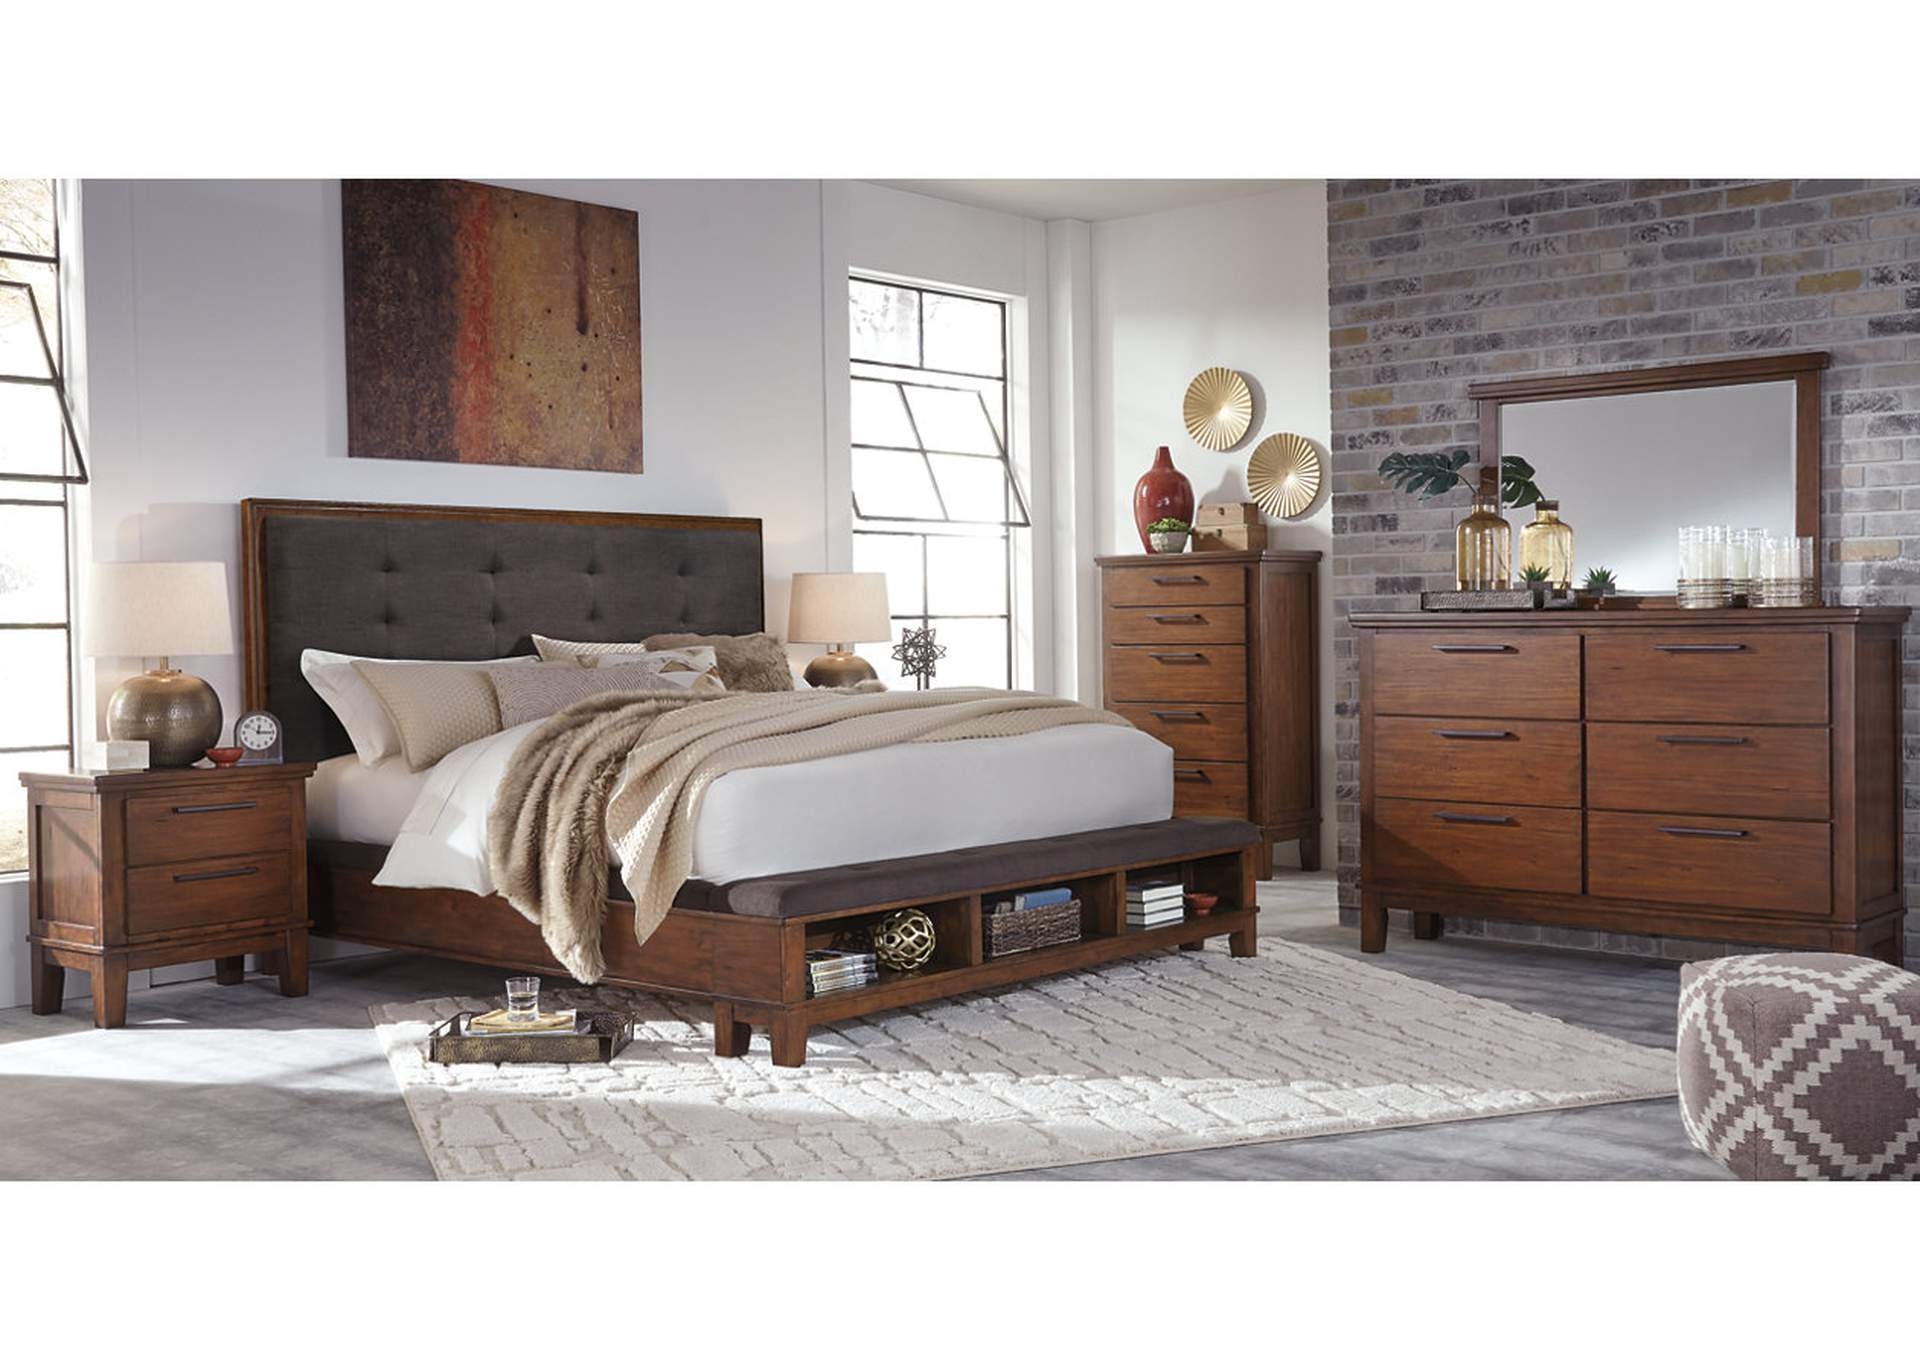 Ralene Medium Brown California King Upholstered Storage Bed w/Dresser, Mirror & Drawer Chest,Signature Design By Ashley